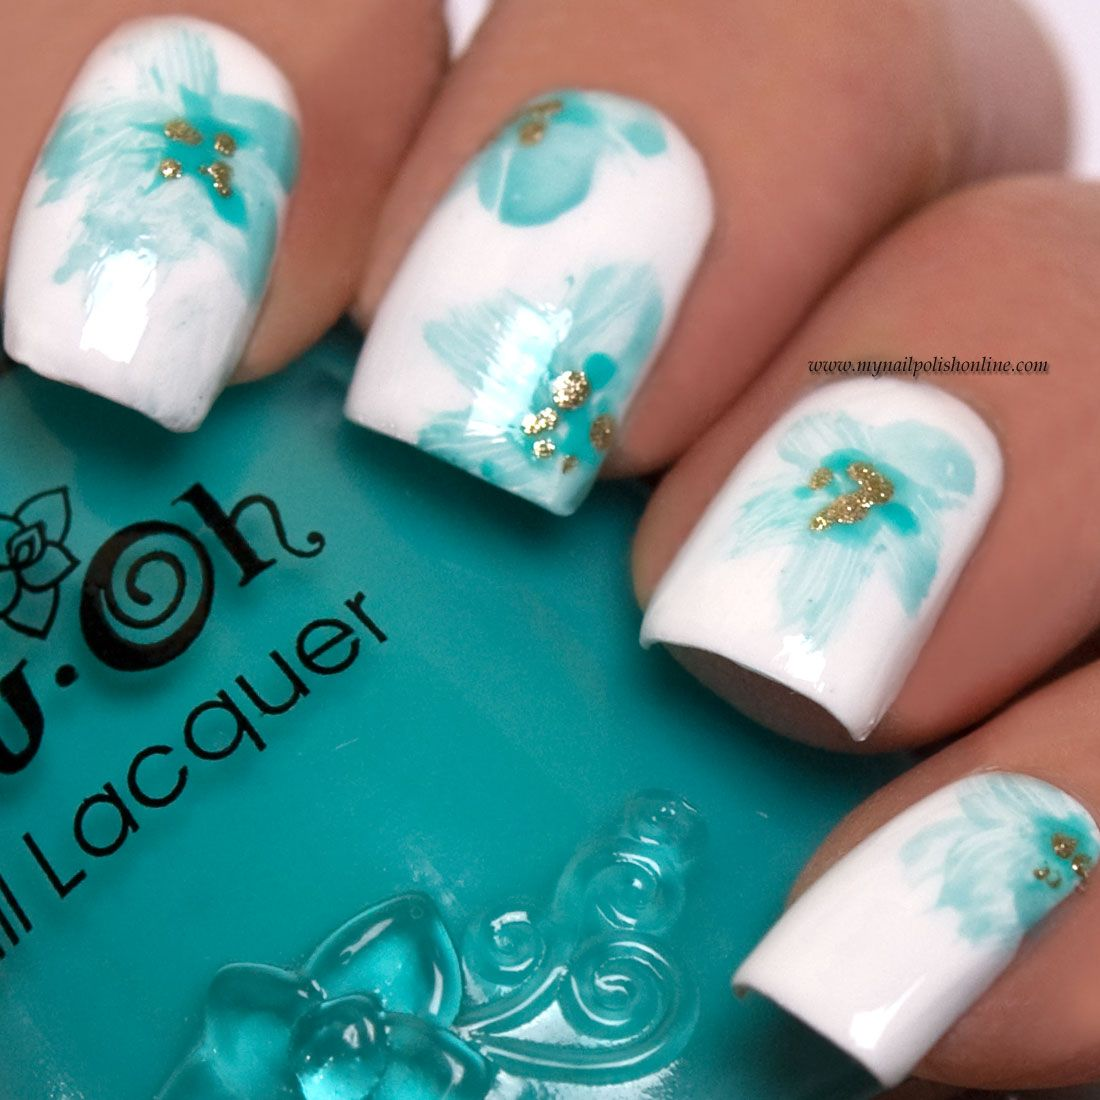 Top 50 Nail Art Designs That You Will Love | White nail polish ...